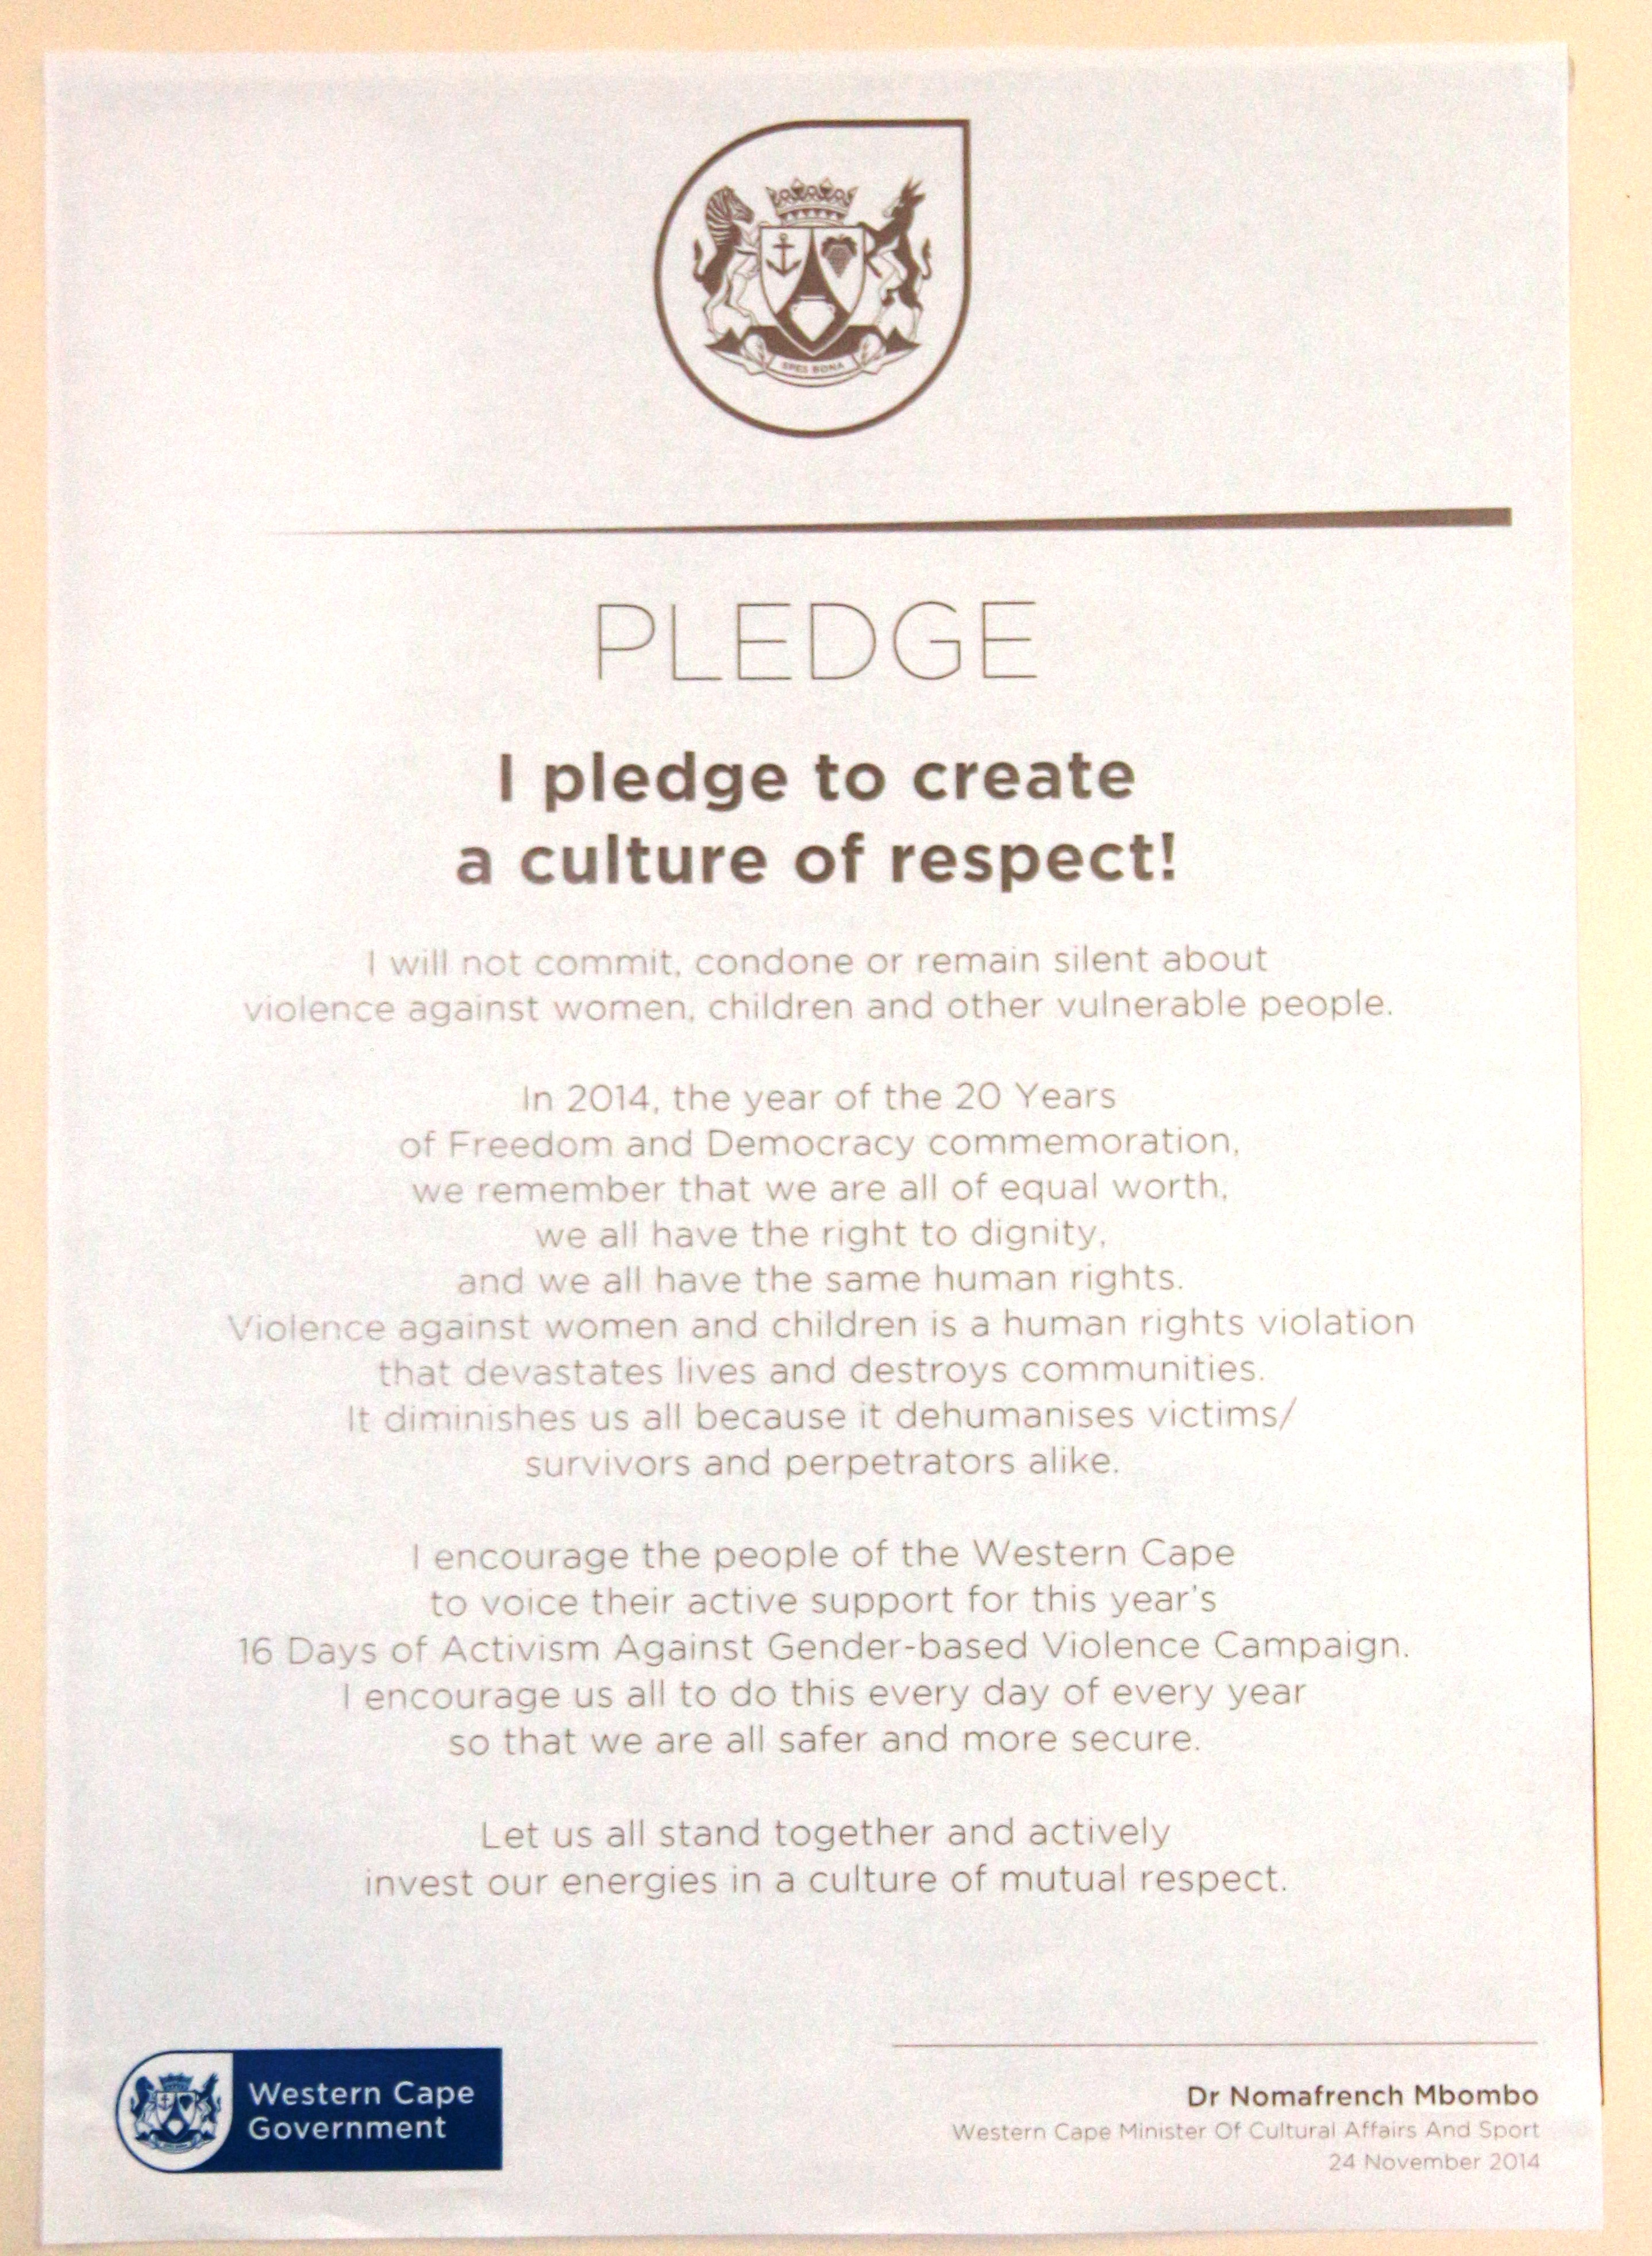 The pledge to create a culture of respect.